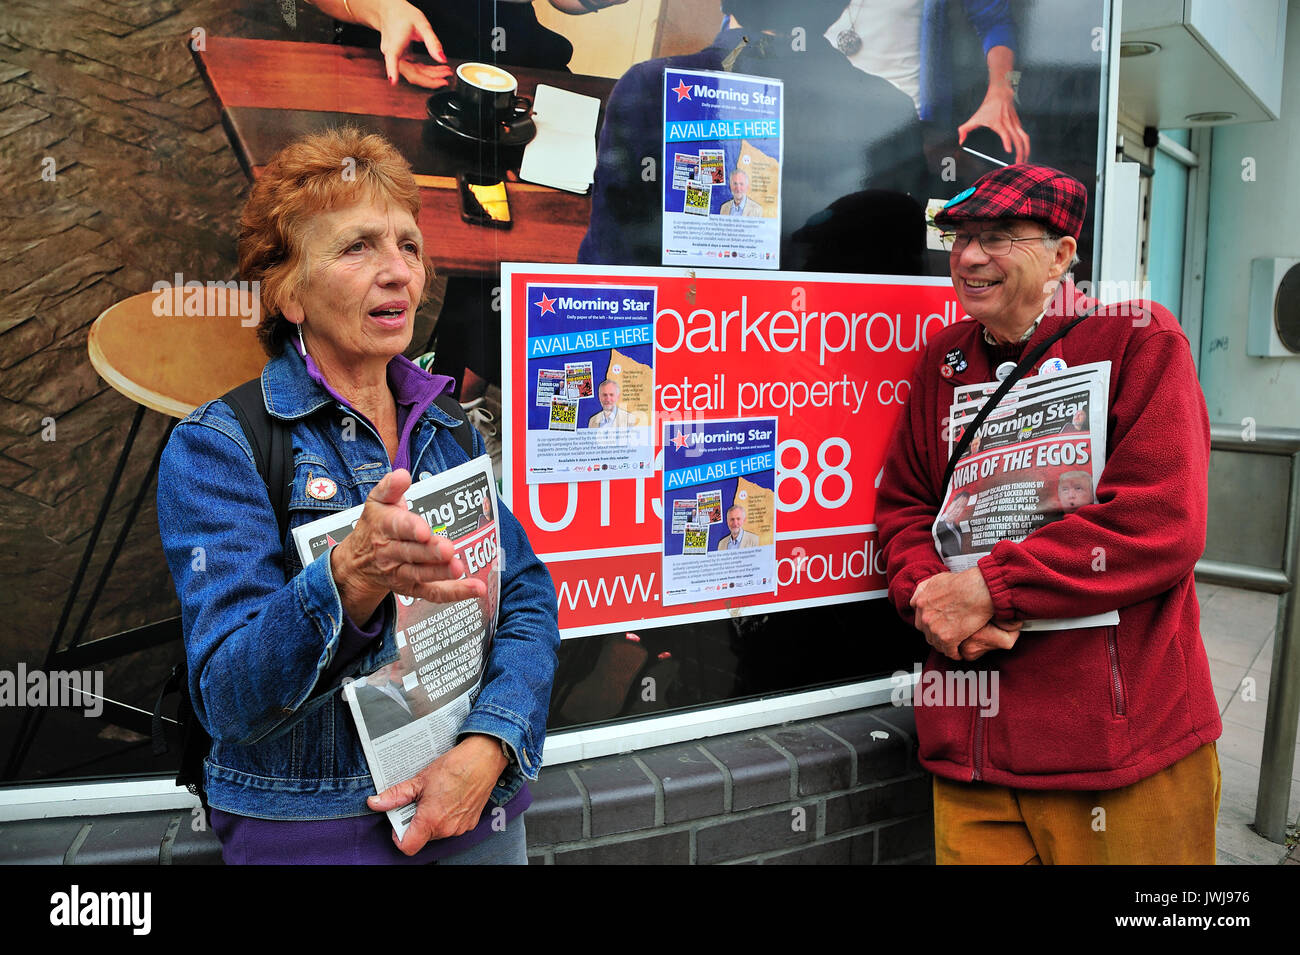 Left Wing Political Activists Sheffield City Centre Yorkshire England UK Stock Photo